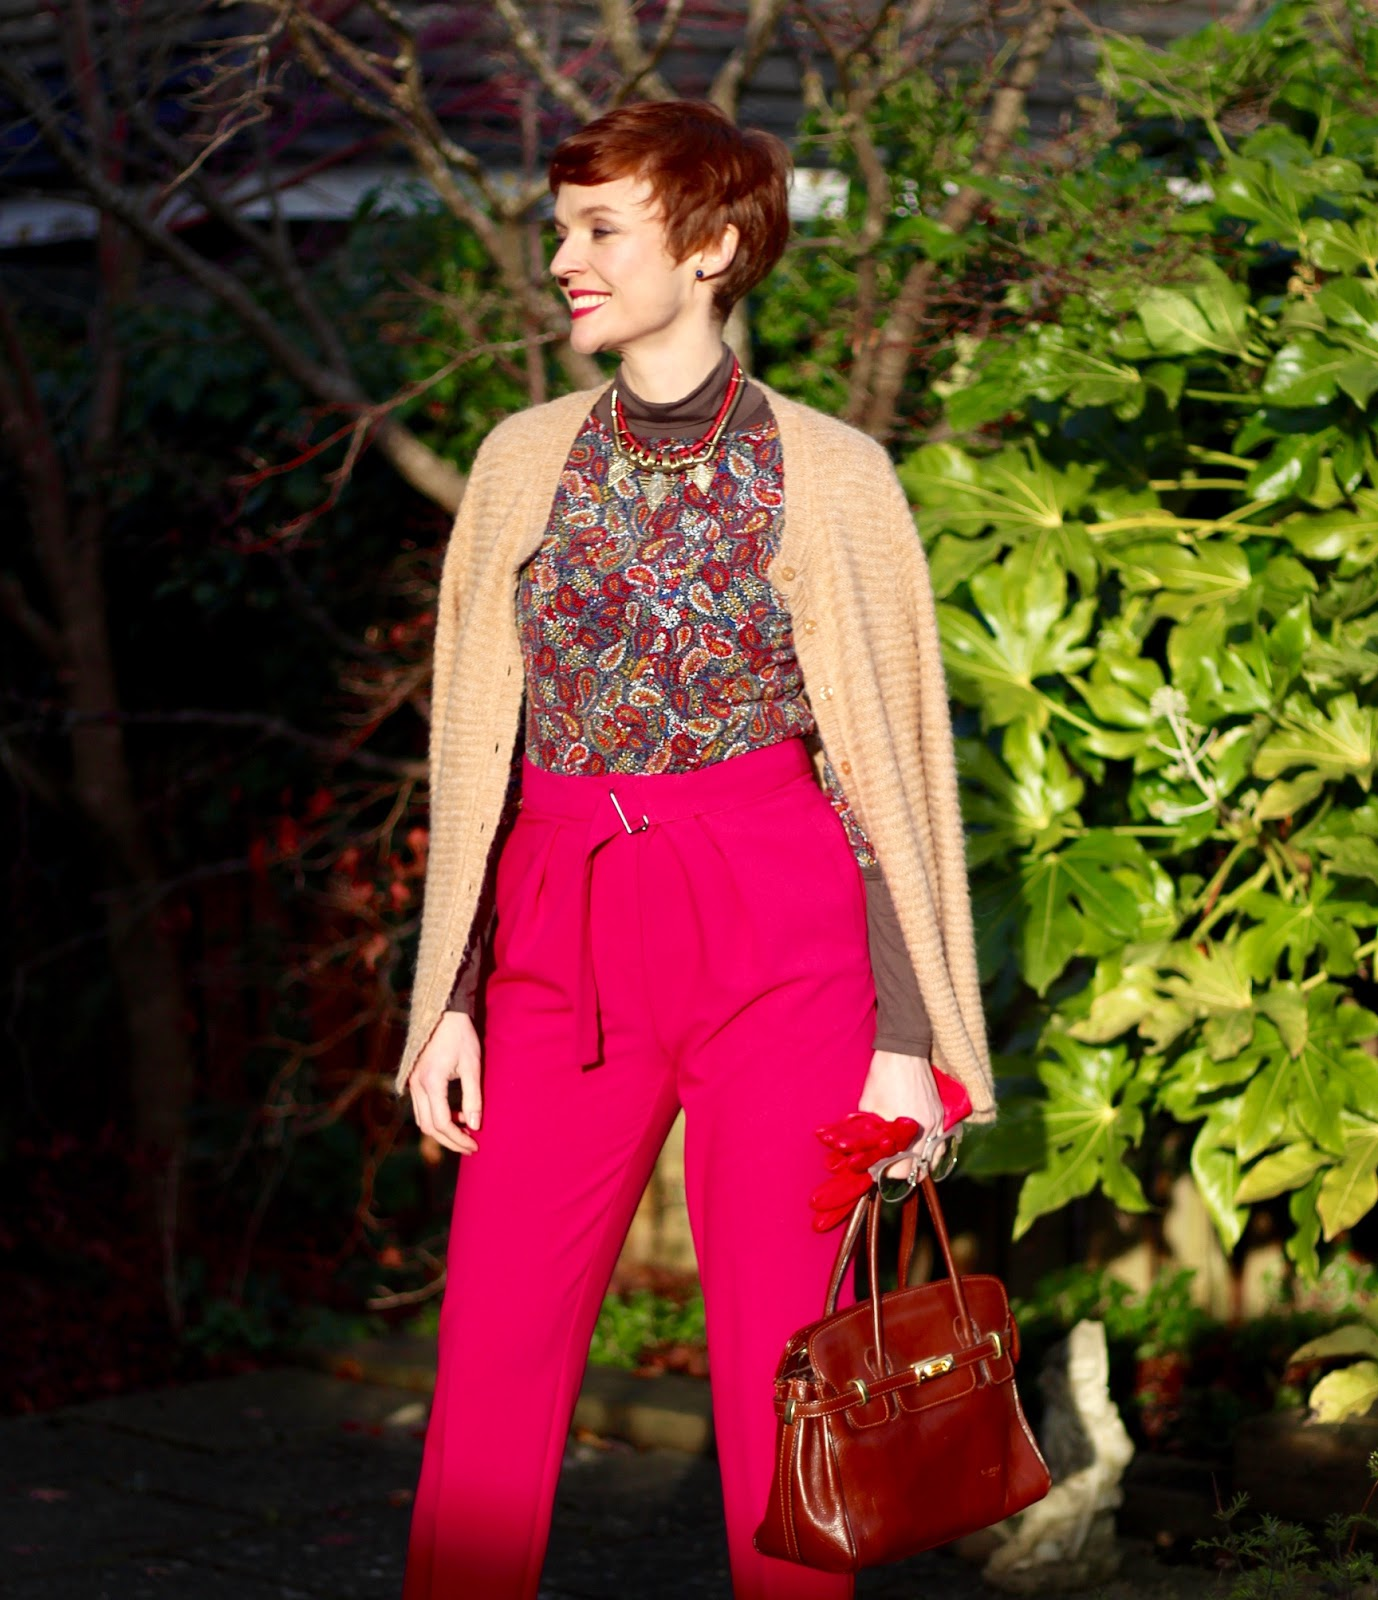 Bright Pink Peg Leg Trousers & Toffee Coloured Hiking Boots | Fake Fabulous